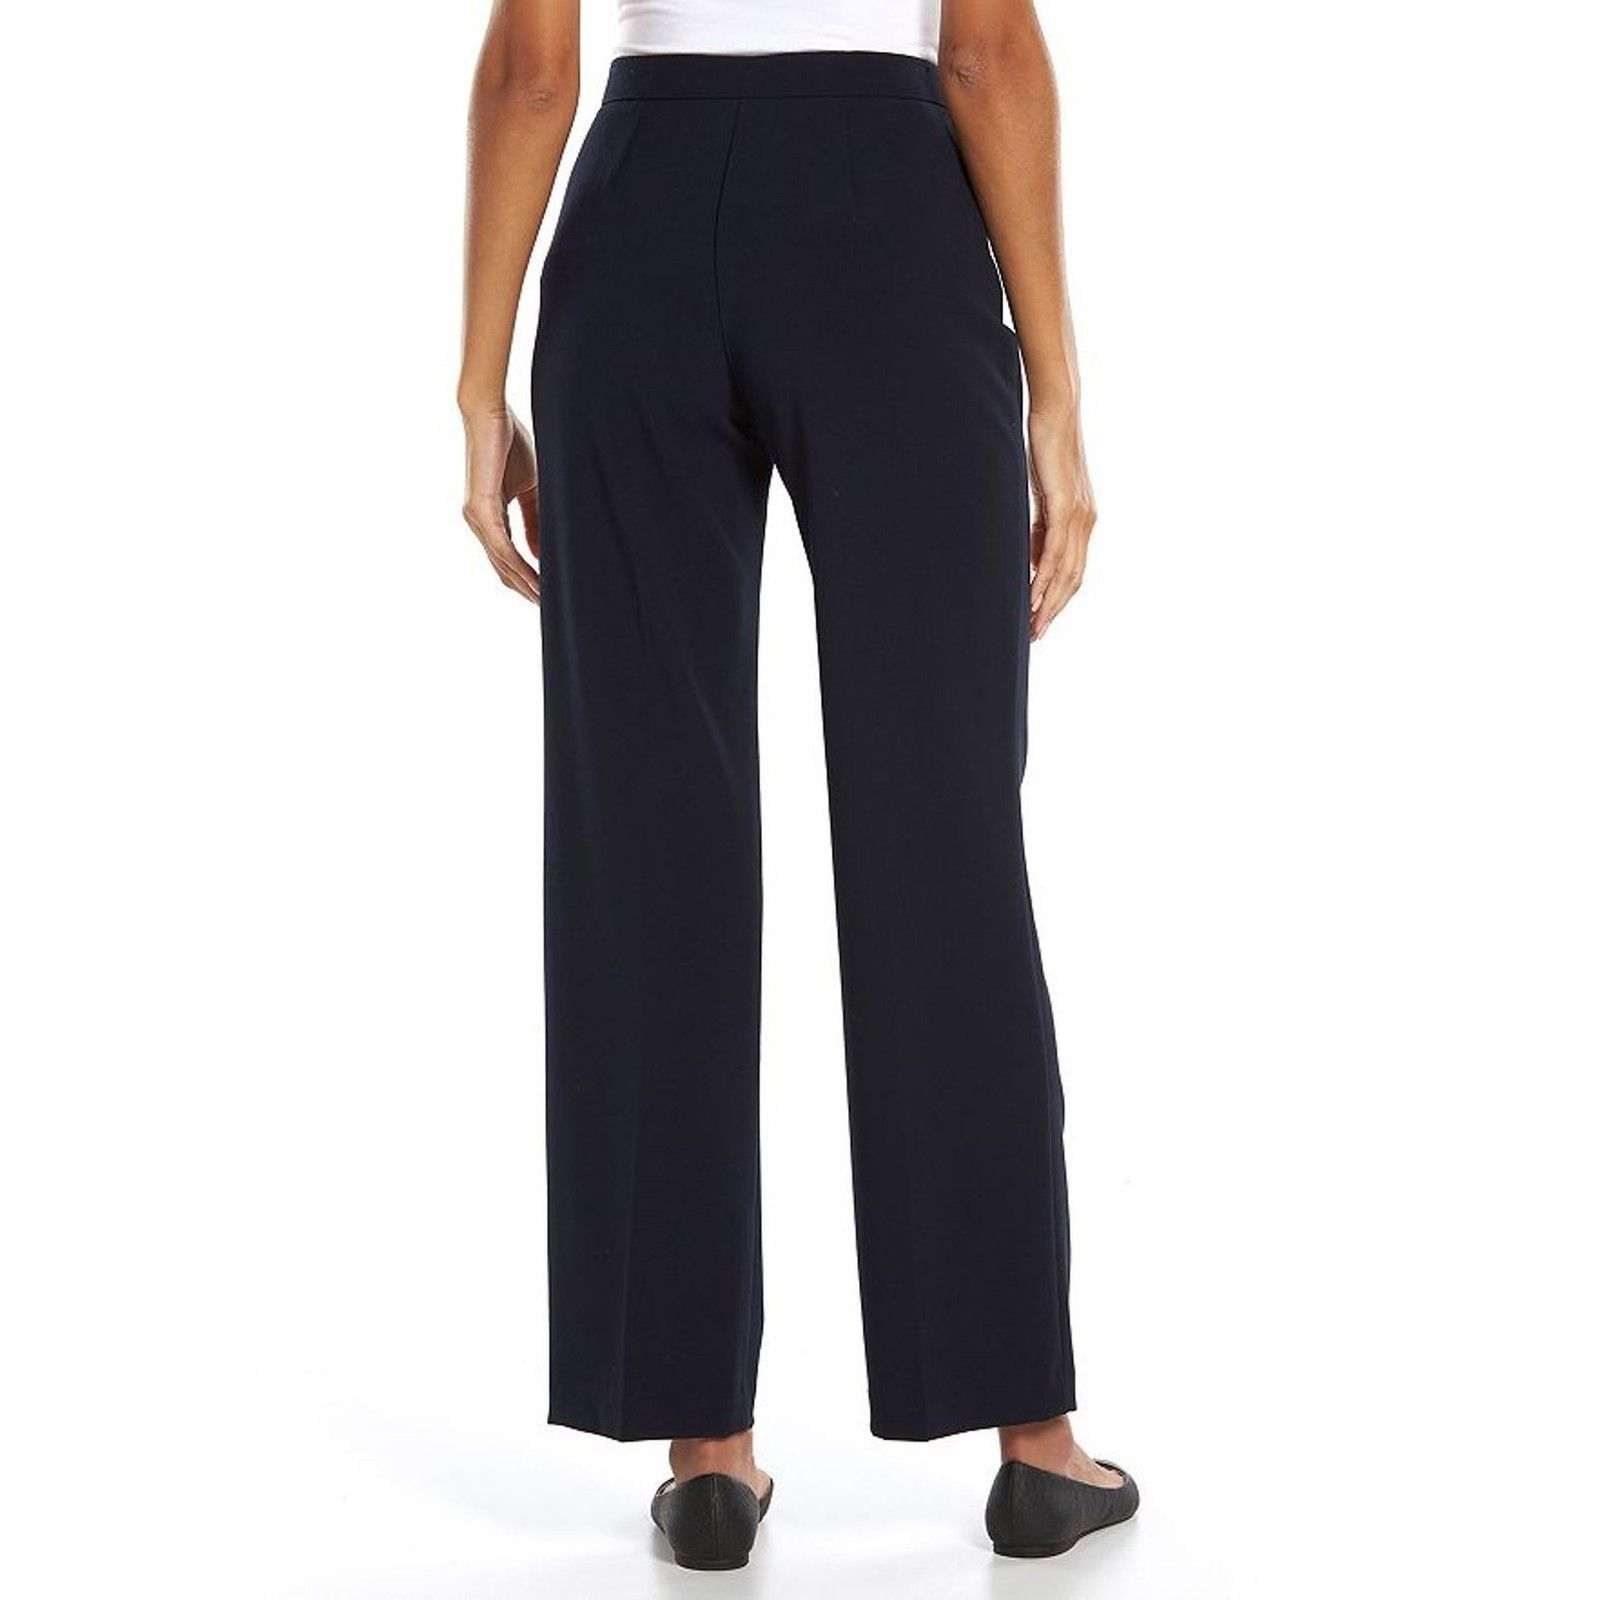 Shop women's petite pant suits, skrit suits, business suits and more Lord & Taylor. Free shipping on any order over $